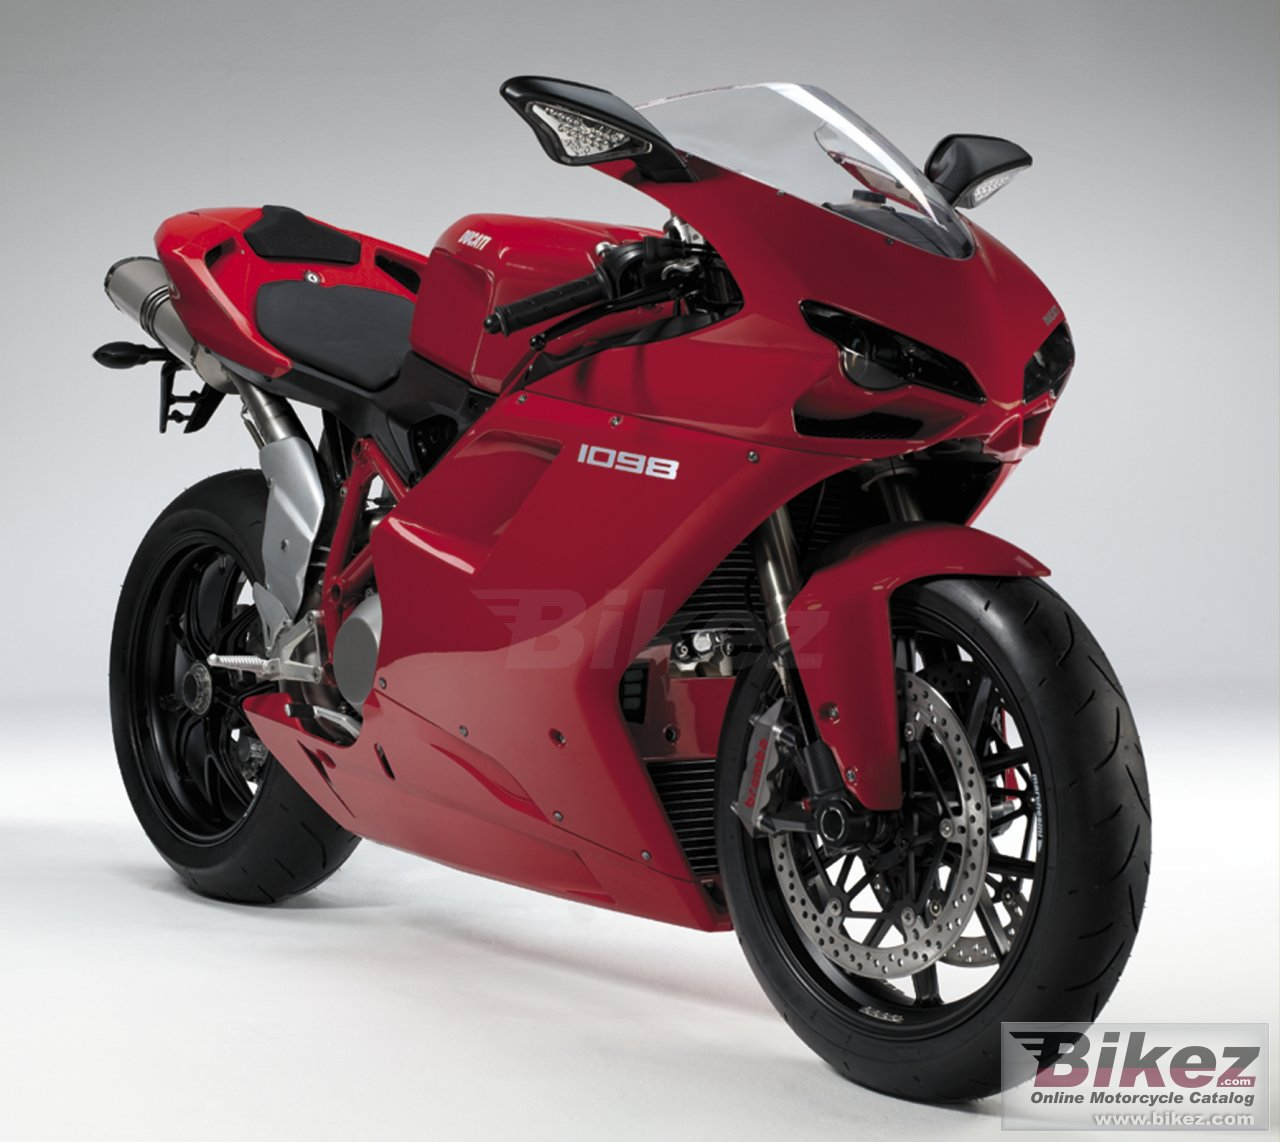 Big Ducati superbike 1098 picture and wallpaper from Bikez.com